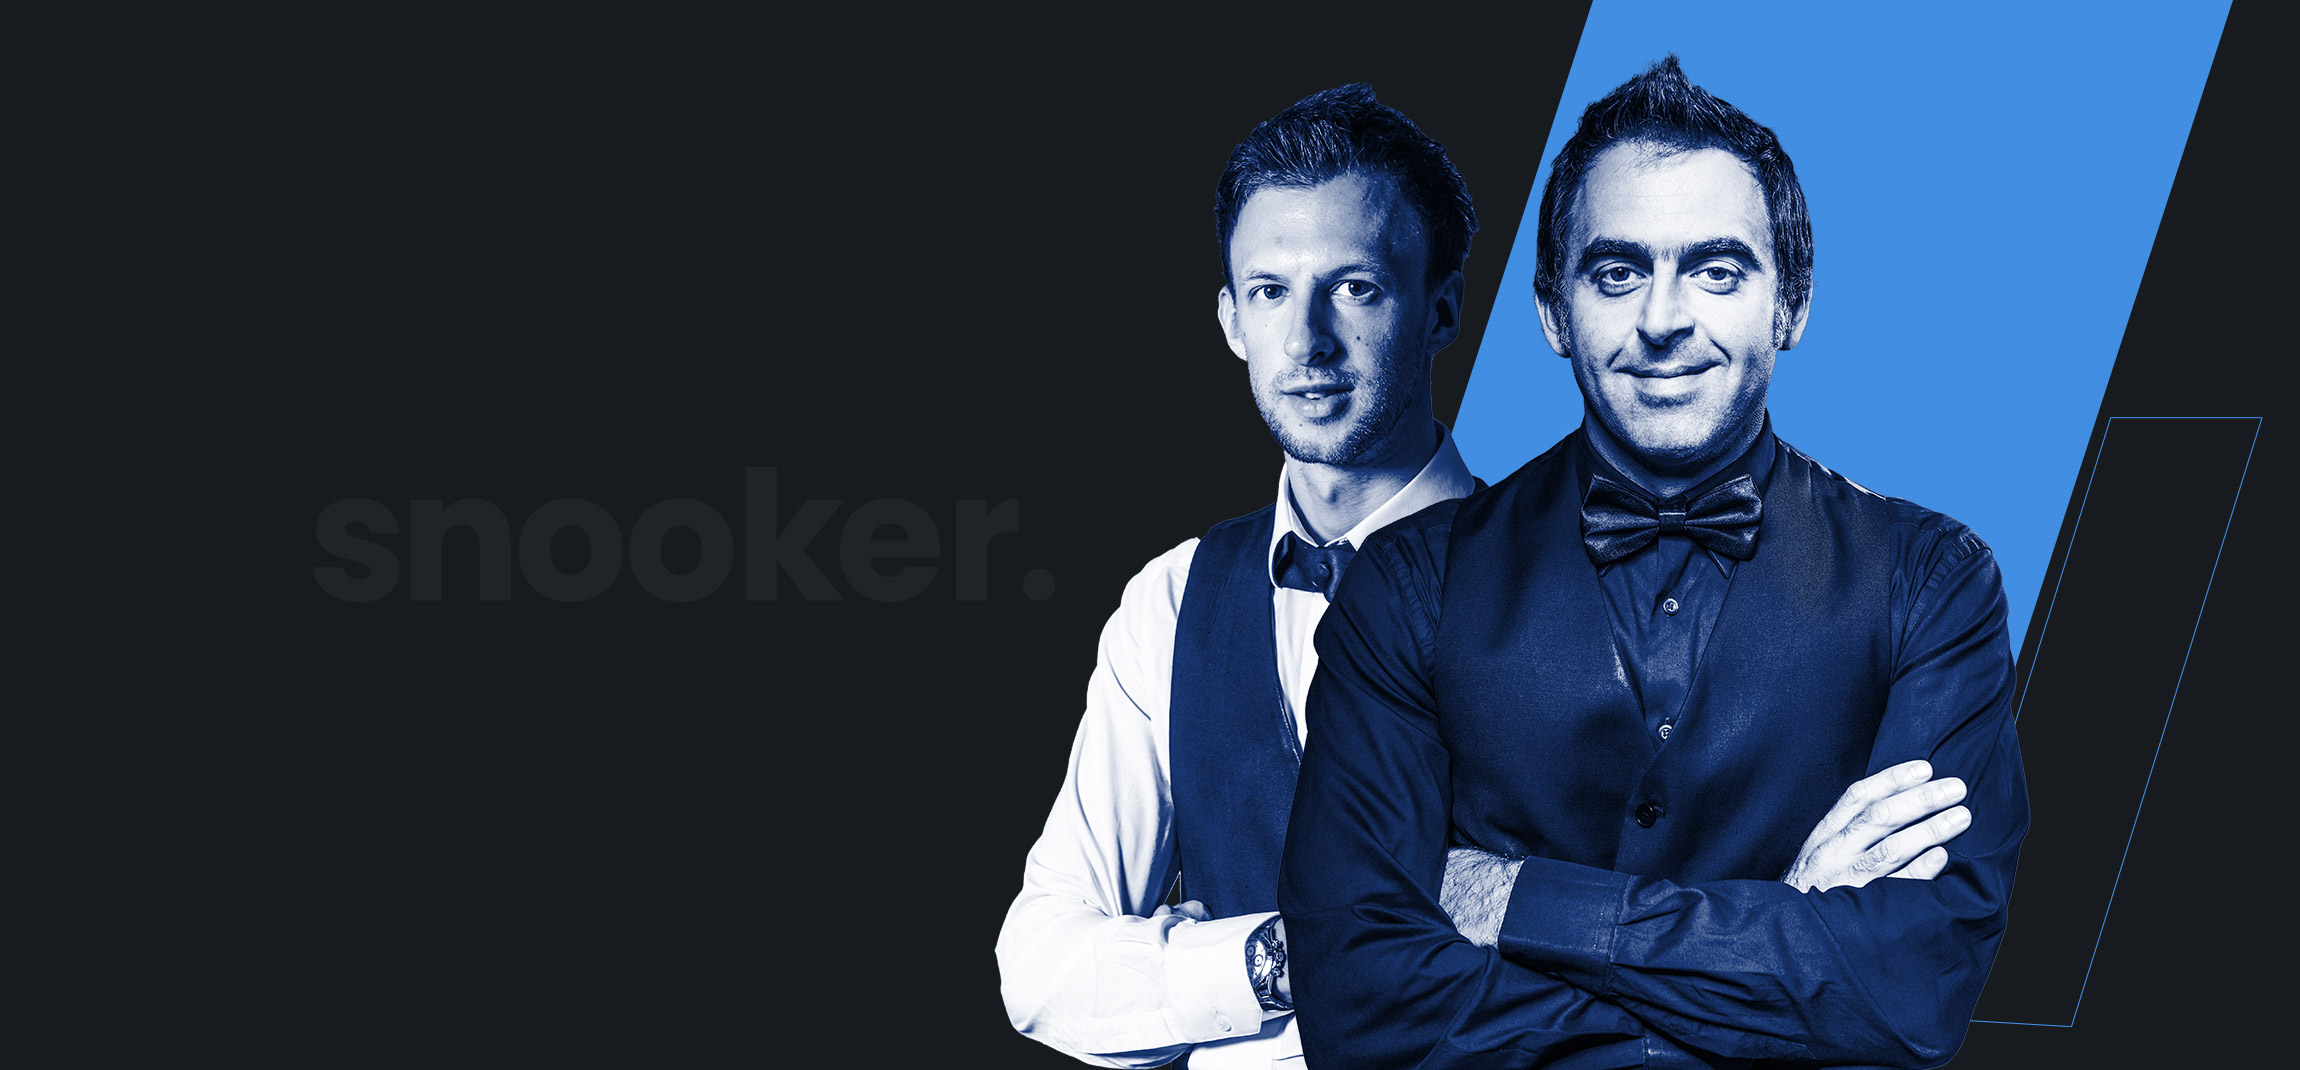 We are Matchroom Sport - We are Snooker World Championships